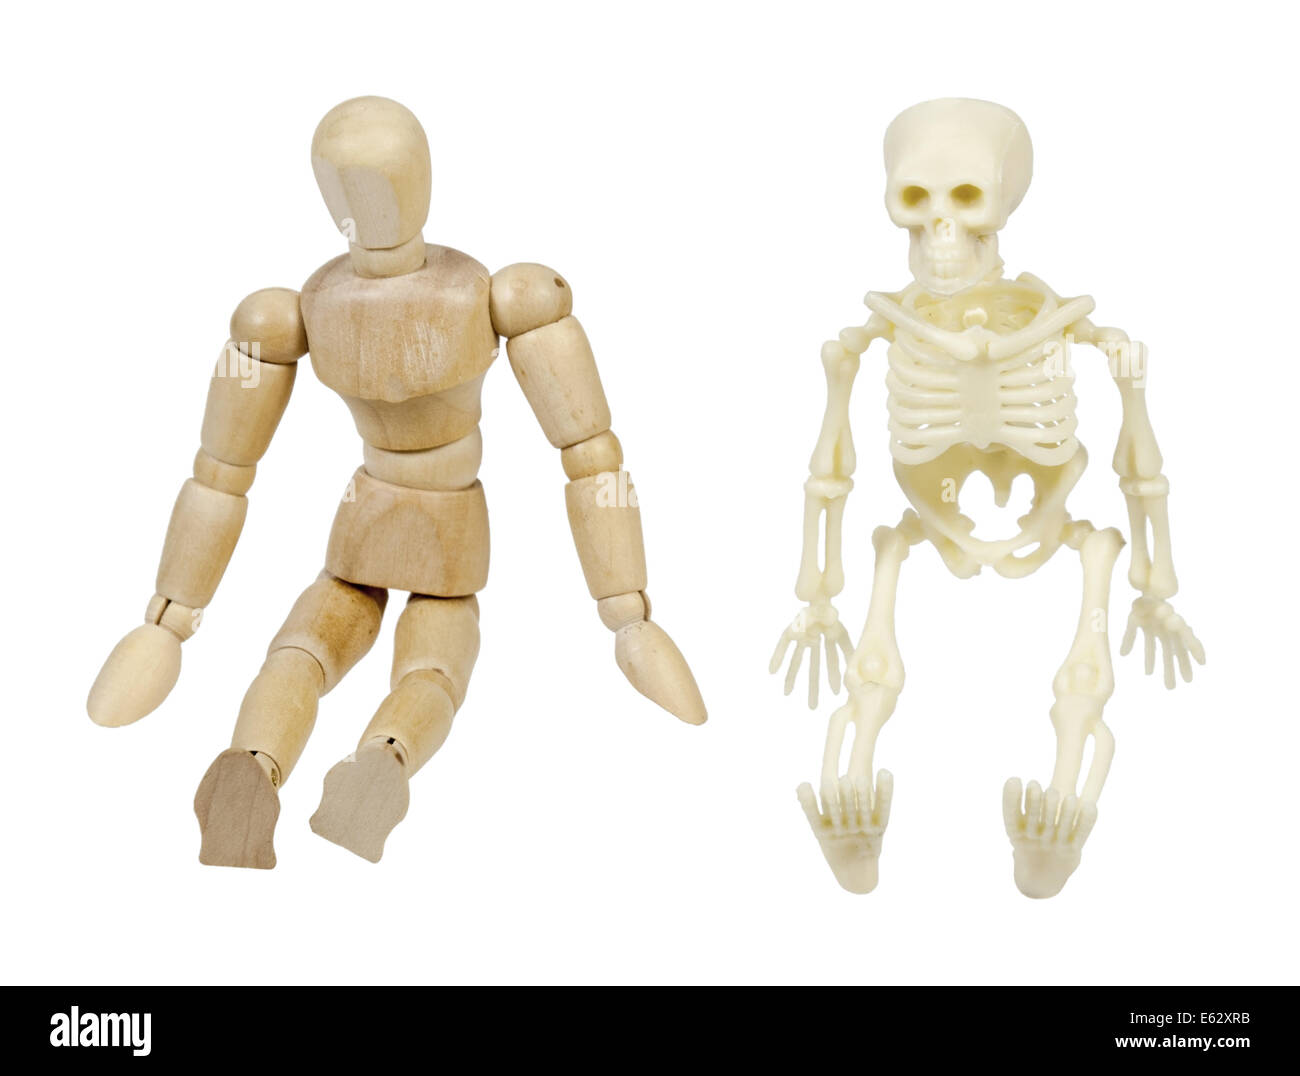 Wooden model representing a person and a skeleton representing internal bone structure - path included - Stock Image